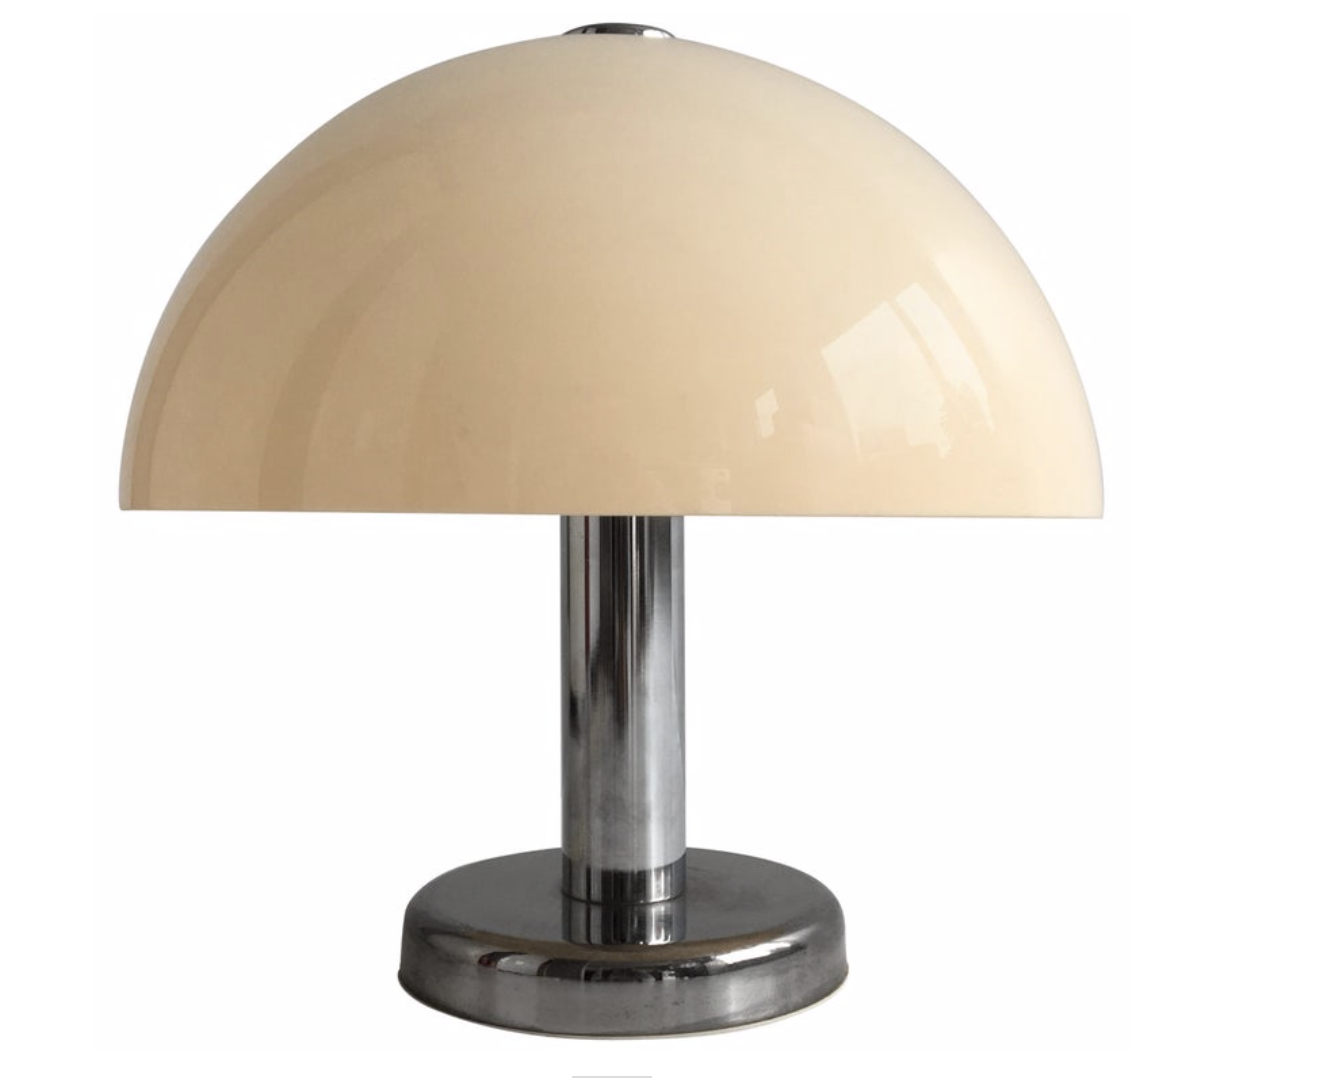 I love browsing through 1stdibs Style section, I found this vintage mushroom lamp in the Mid-Century Modern section for $399.